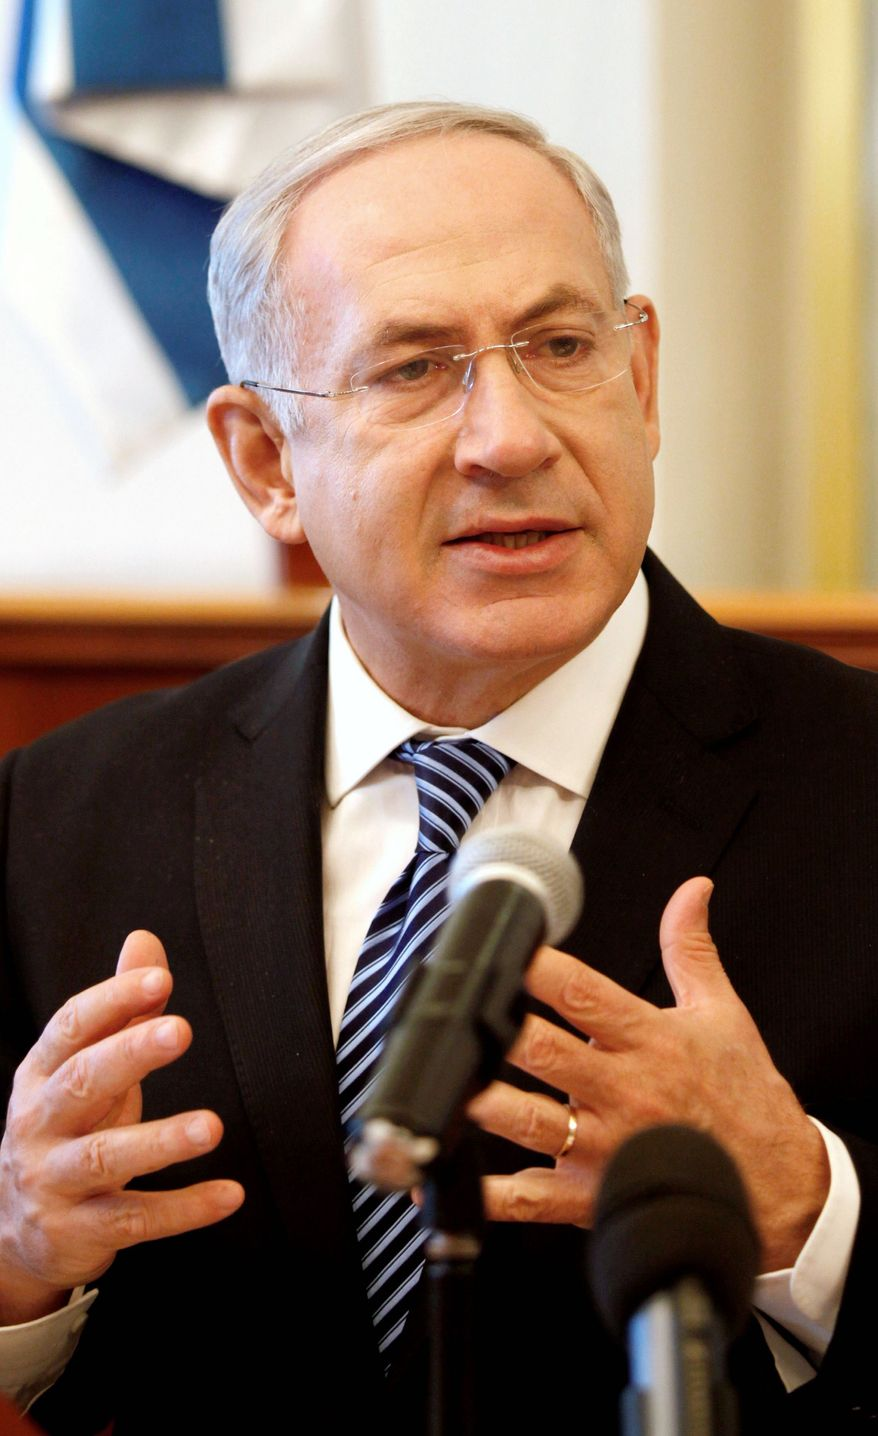 Prime Minister Benjamin Netanyahu says Israel is on alert for plots to kill Israelis overseas, including the Olympics. Eleven Israelis were killed at the 1972 Olympics in Munich. (Associated Press)